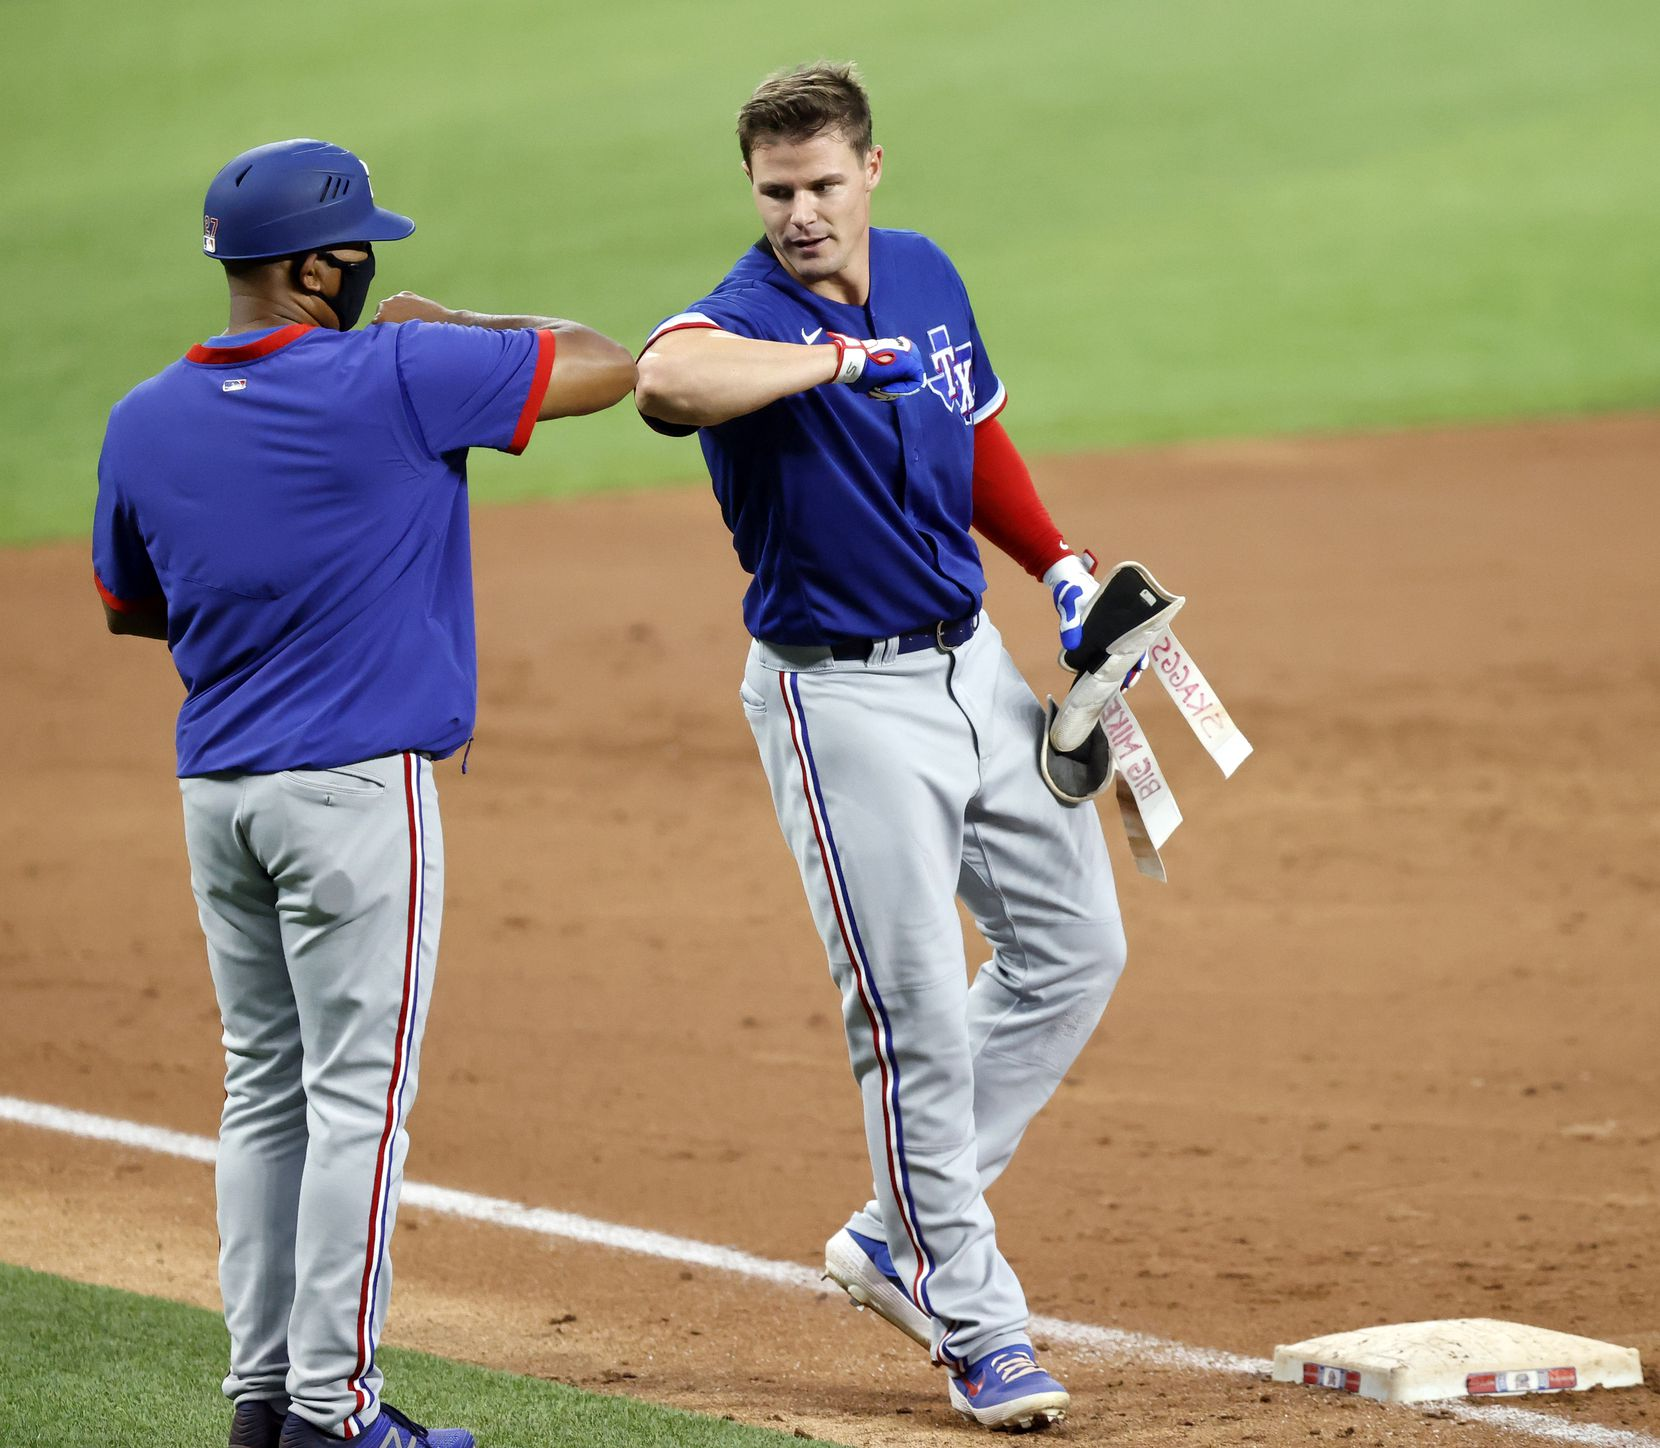 Texas Rangers outfielder Scott Heineman receives an elbow bump from third base coach Tony Beasley after his triple during a simulated Summer Camp game at Globe Life Field in Arlington, Texas, Thursday, July 9, 2020. (Tom Fox/The Dallas Morning News)